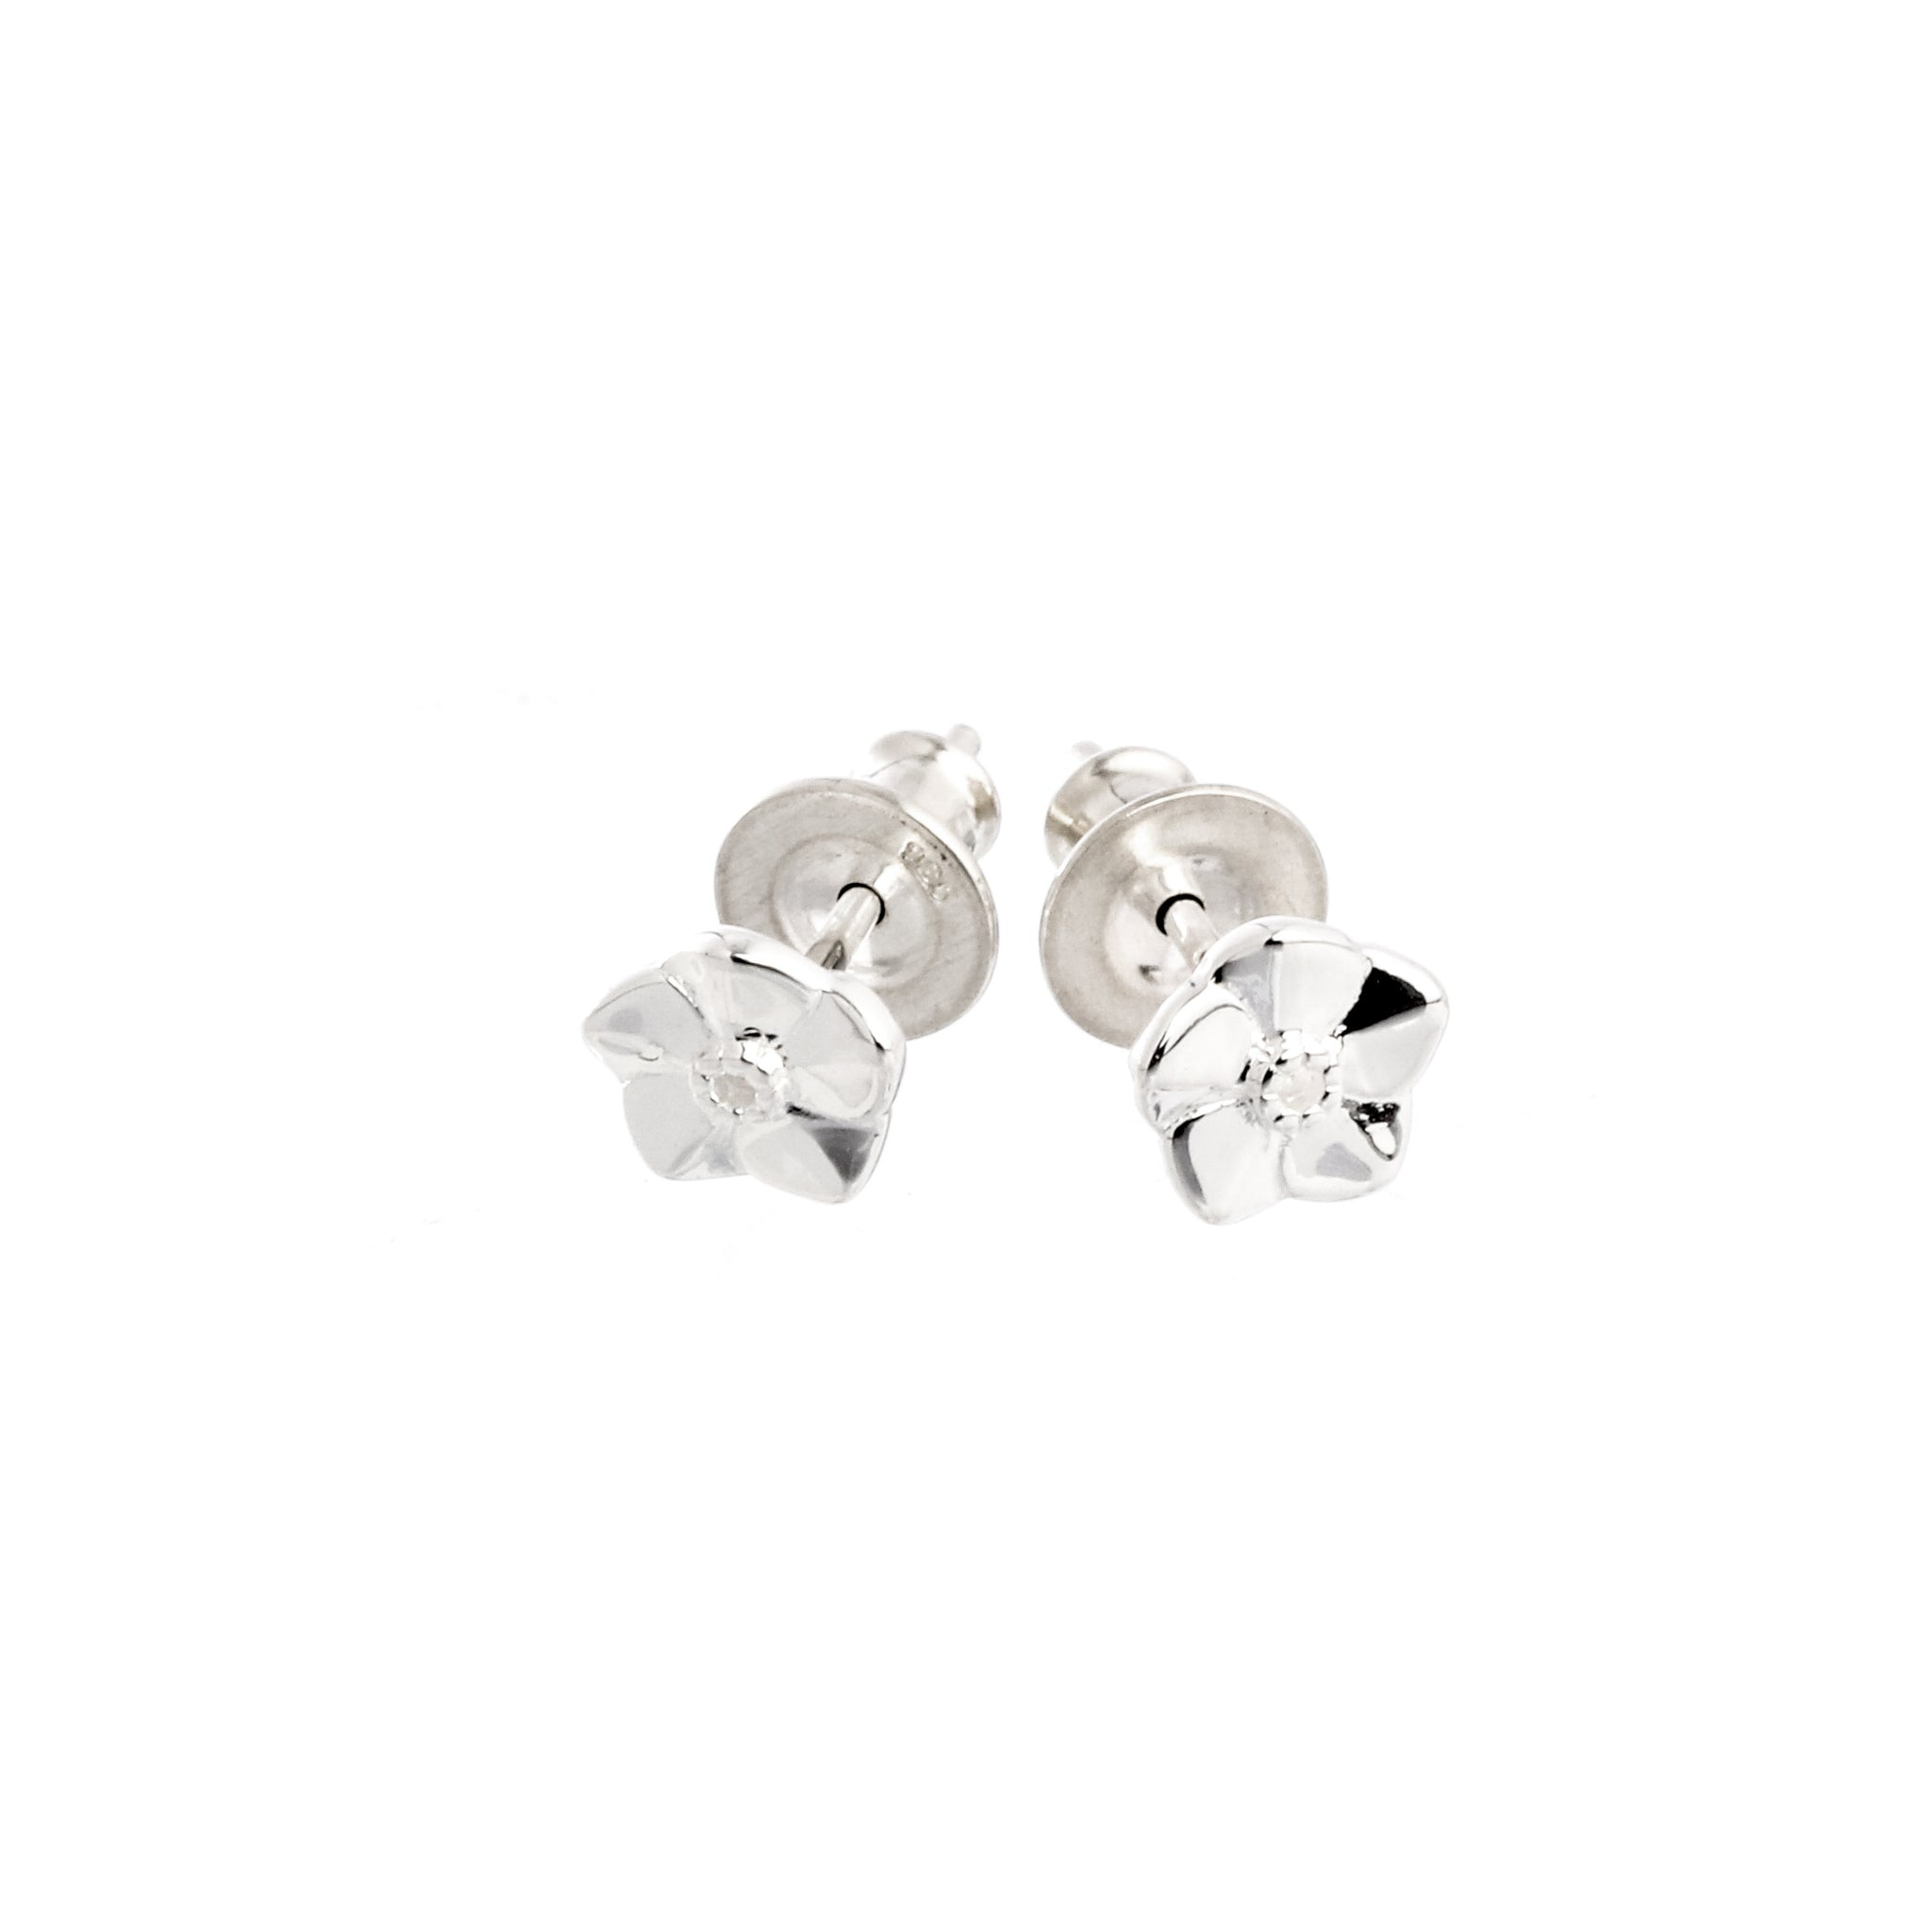 Forget-Me-Not Tiny Silver Stud Earrings